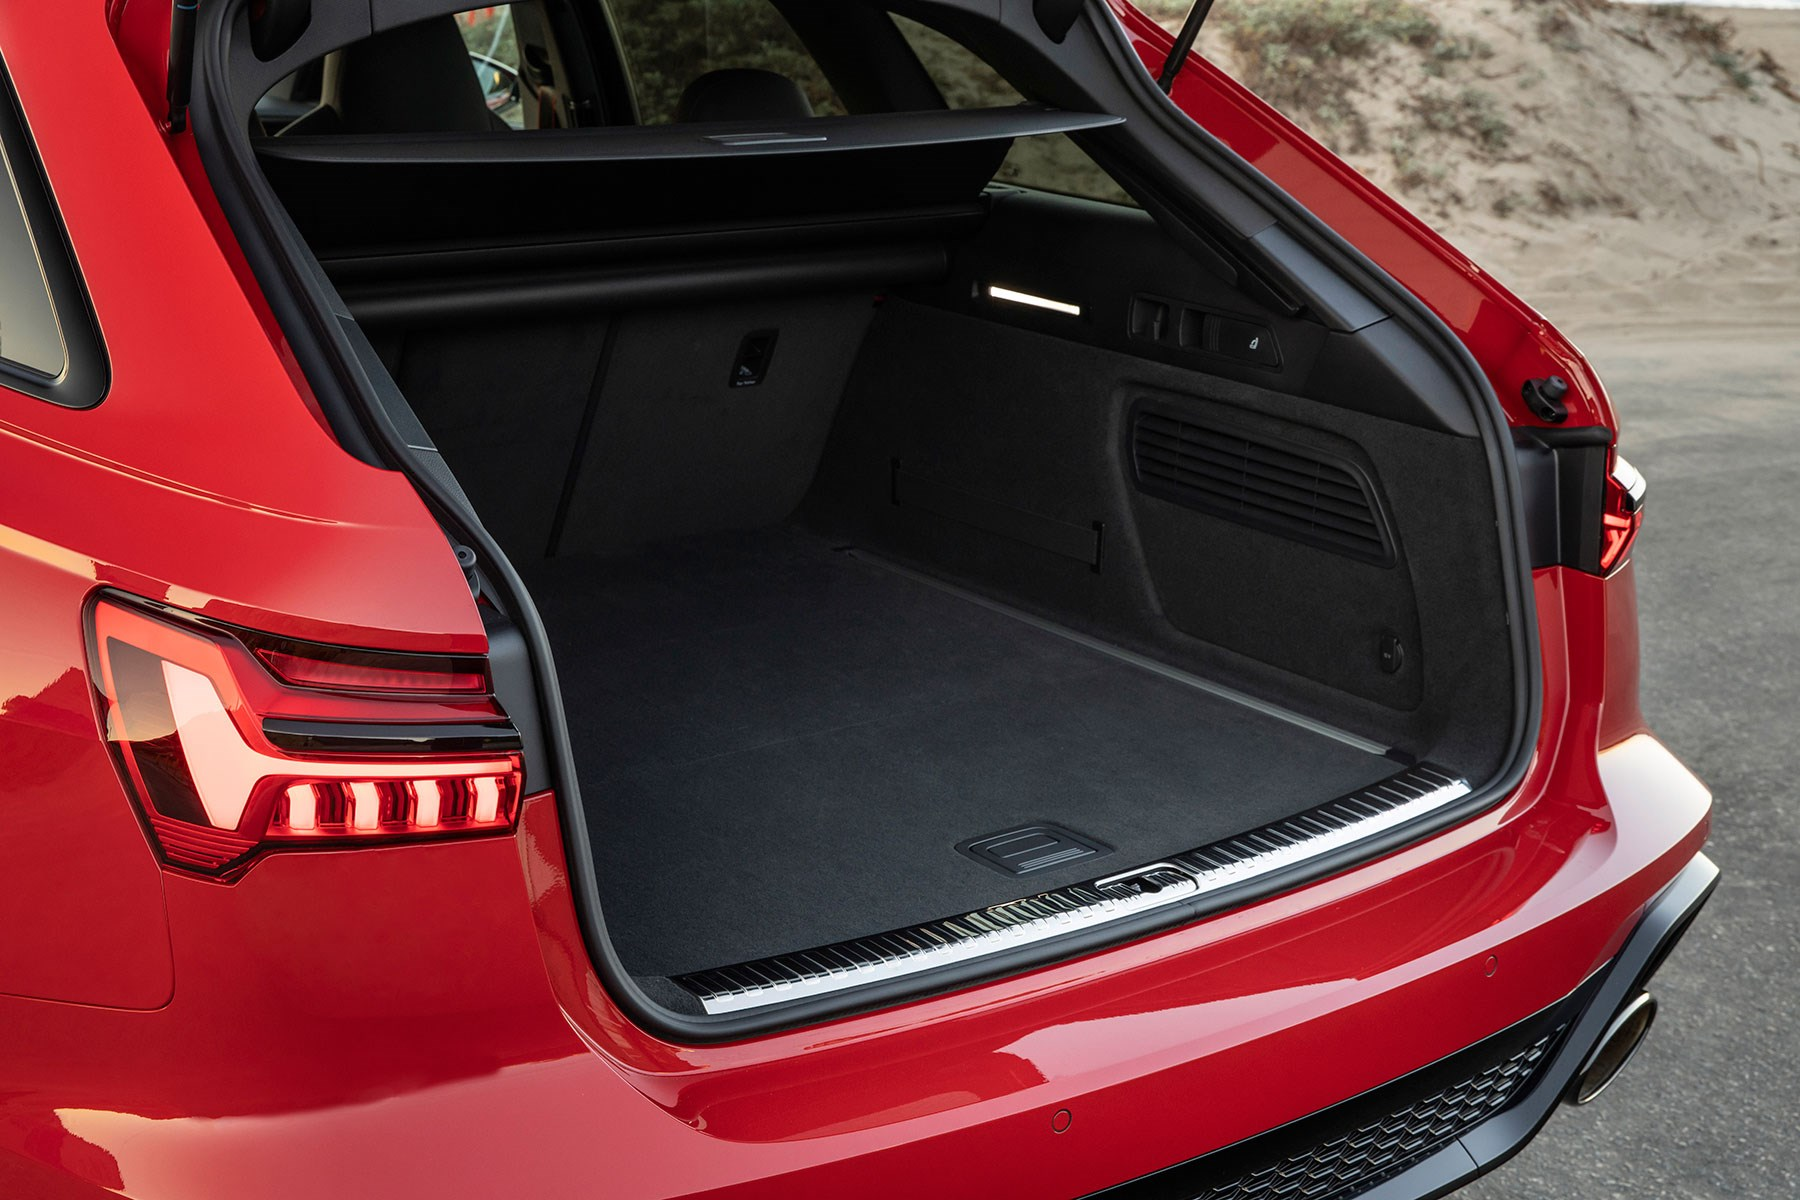 Audi RS6 boot